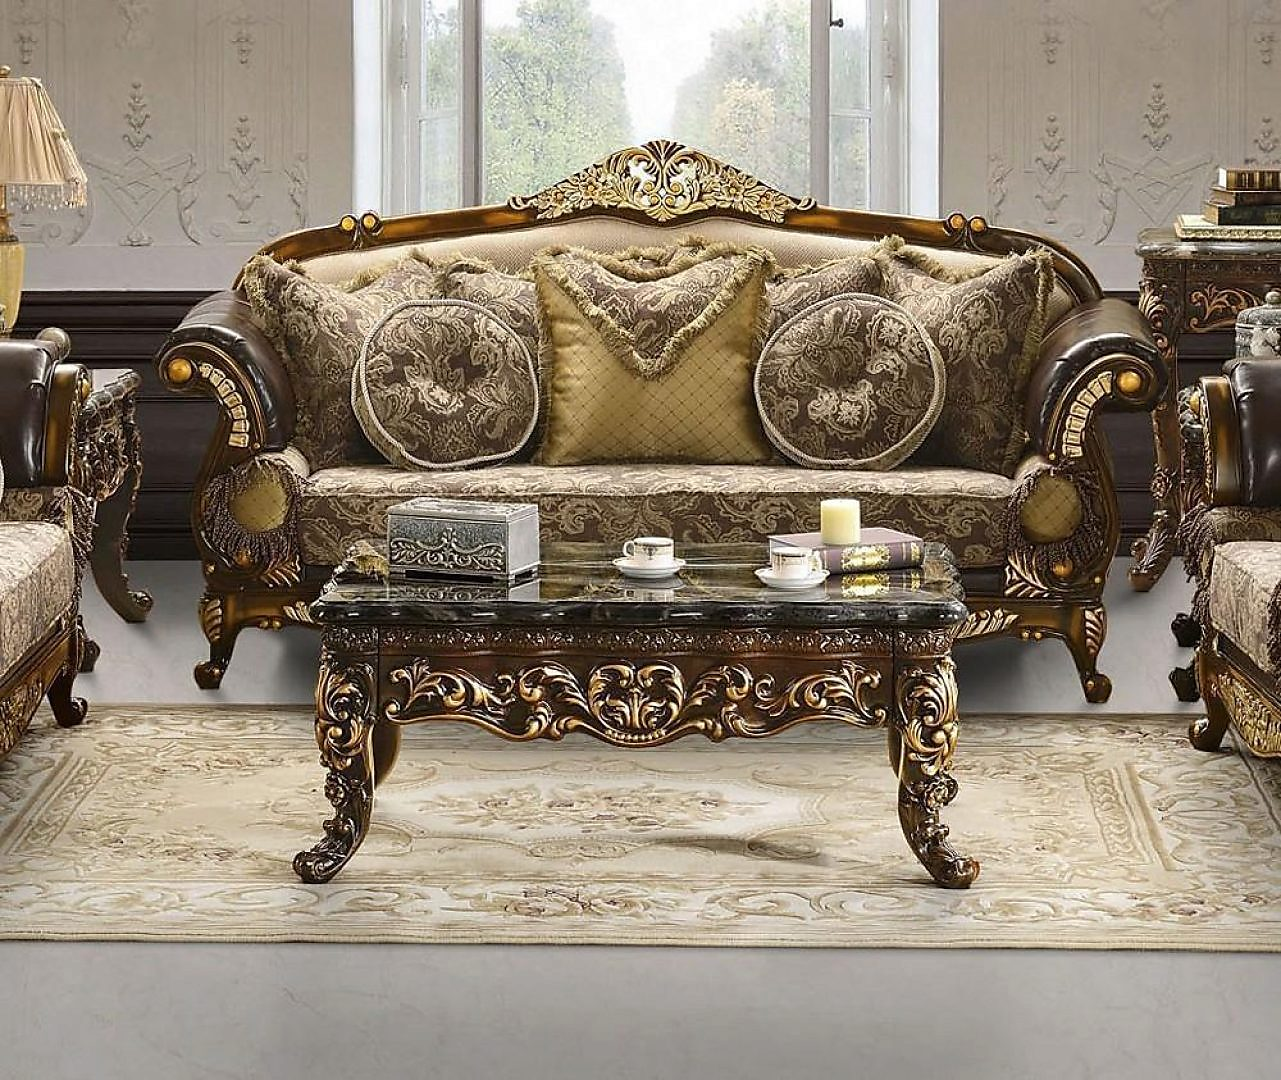 Traditional Victorian Royal HD-26 Loveseat in Espresso by Homey Design